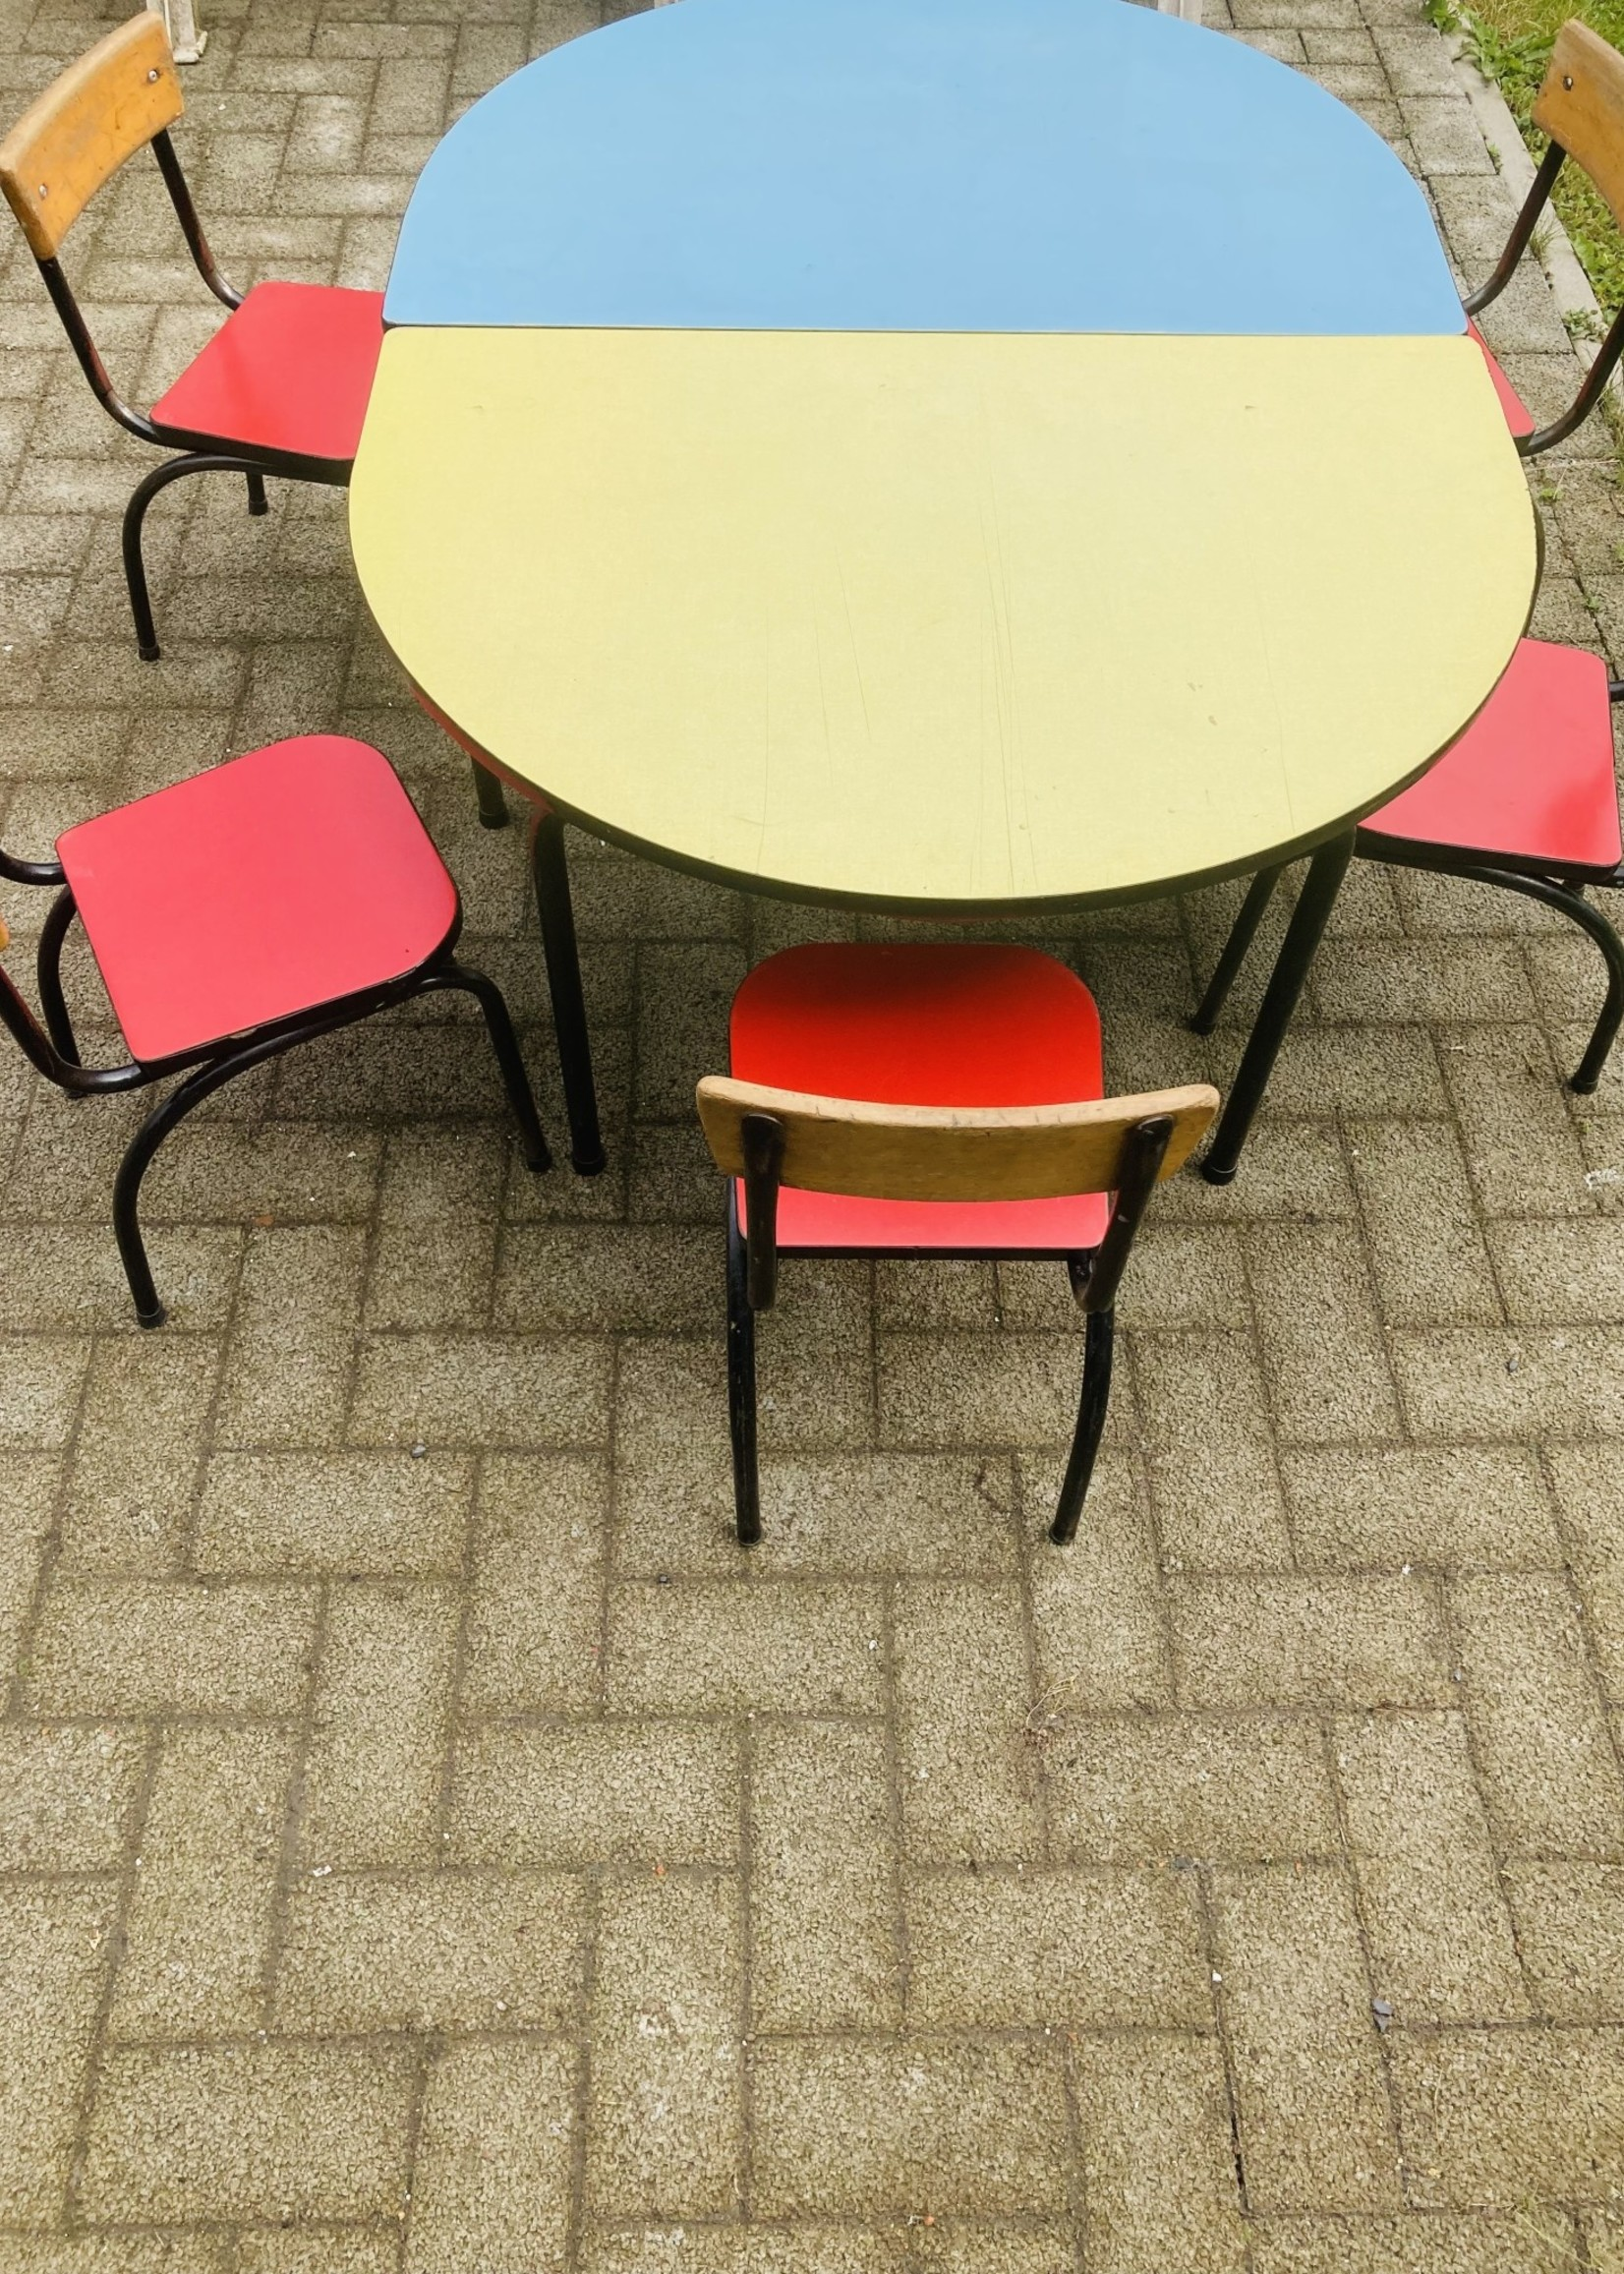 Set of Tubax half moon table and 3 chairs Yellow and Red